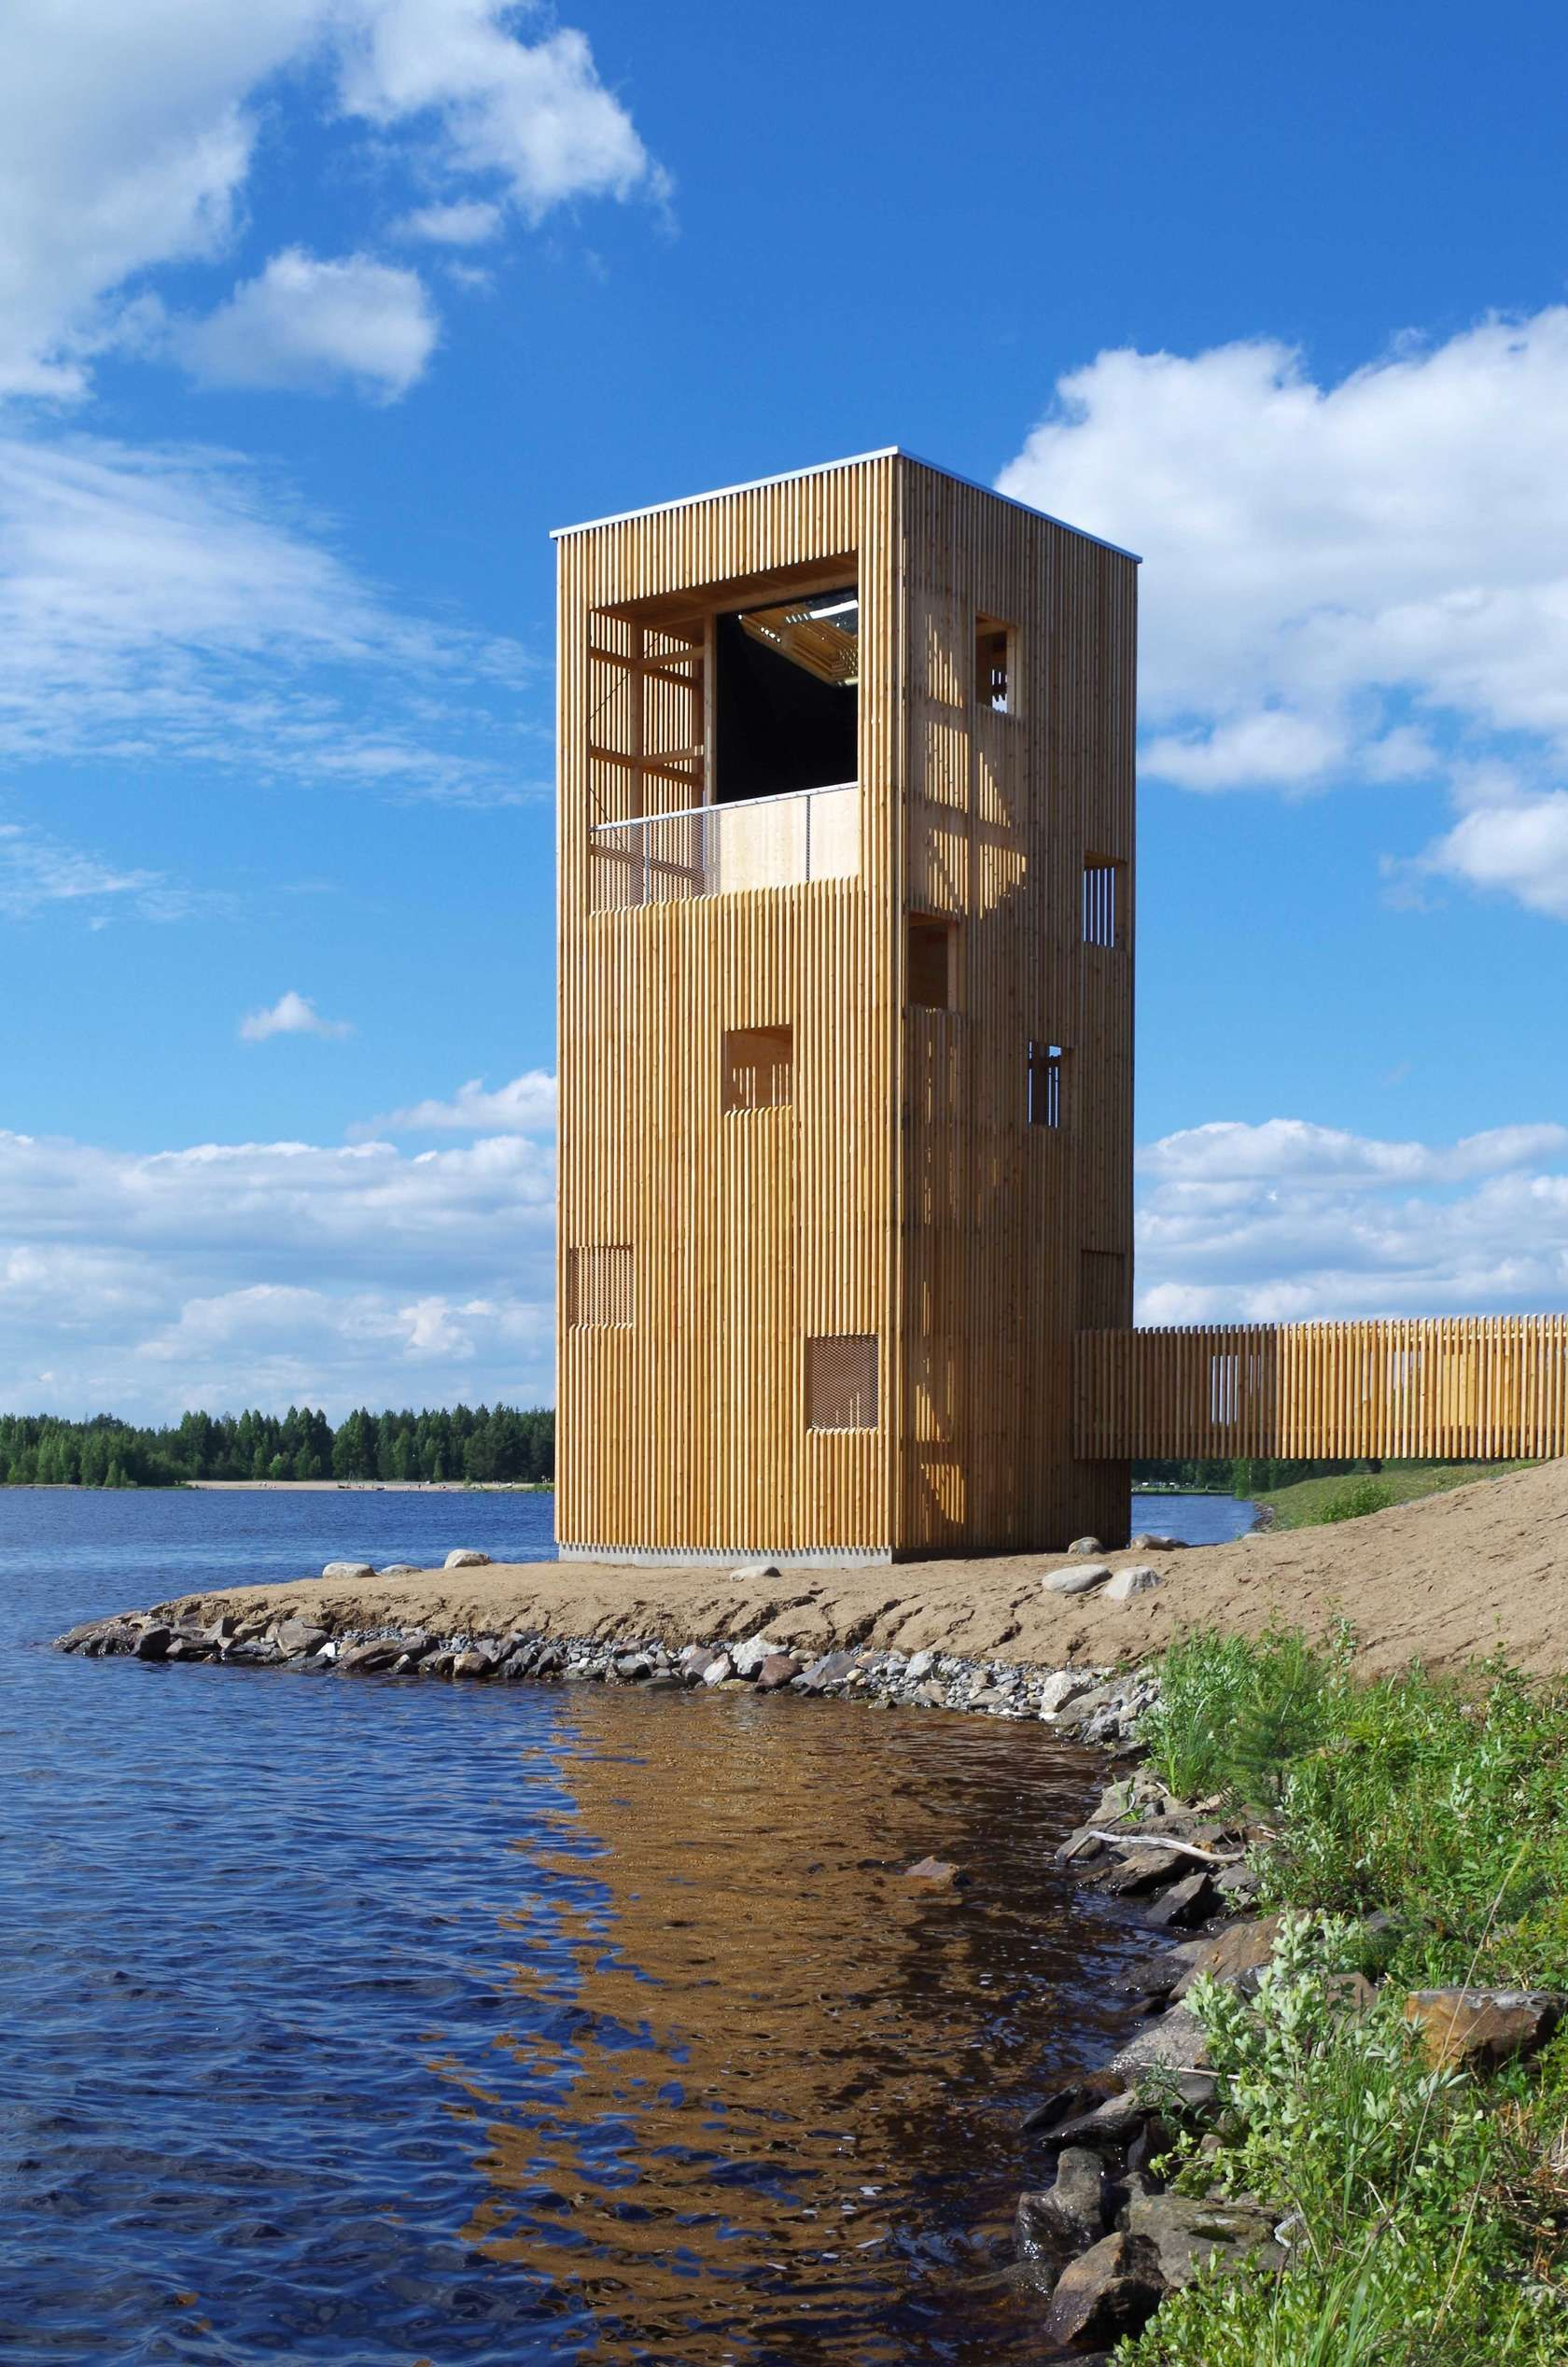 The periscope tower is a giant wooden periscope structure for Observation tower house plans